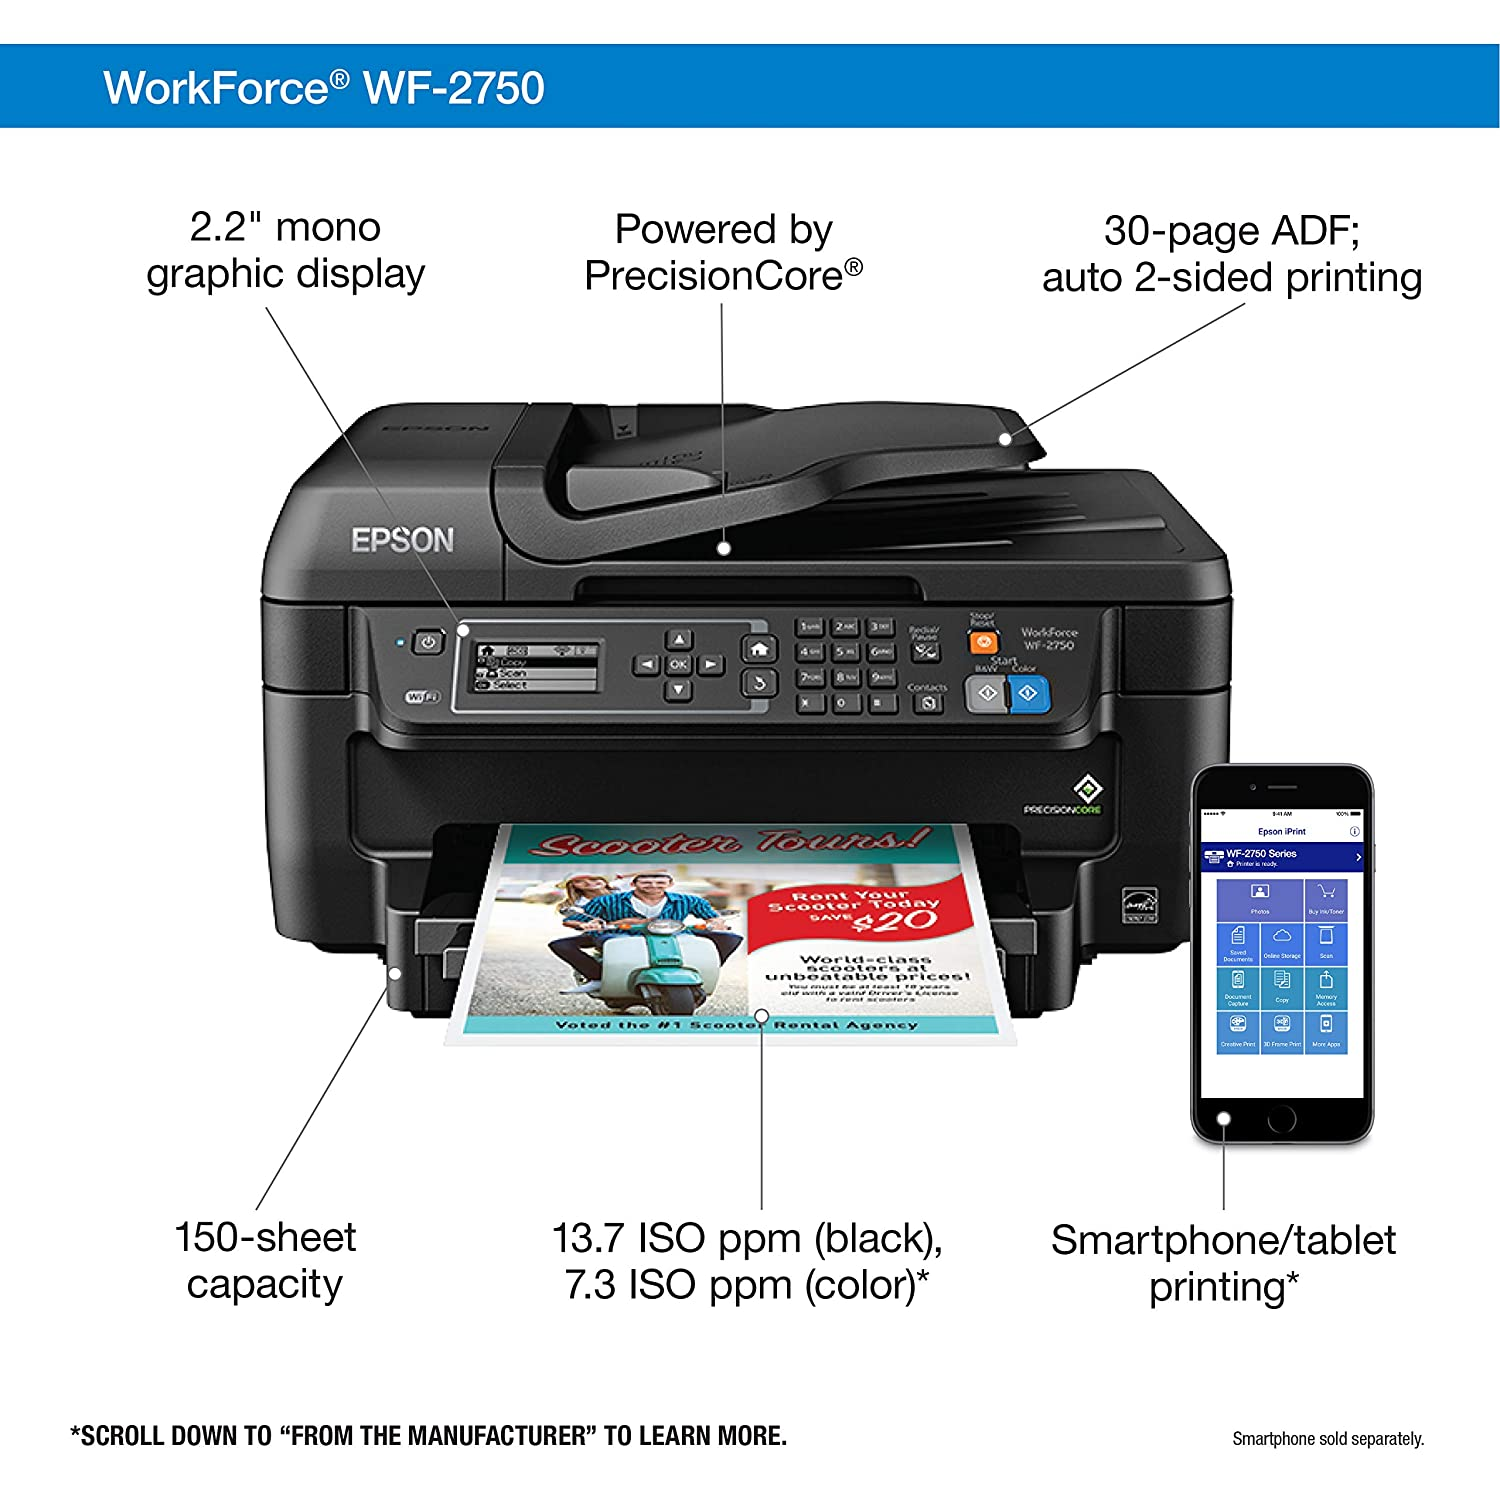 Amazon.com: Epson WF-2750 All-in-One Wireless Color Printer with Scanner,  Copier & Fax, Amazon Dash Replenishment Enabled: Electronics